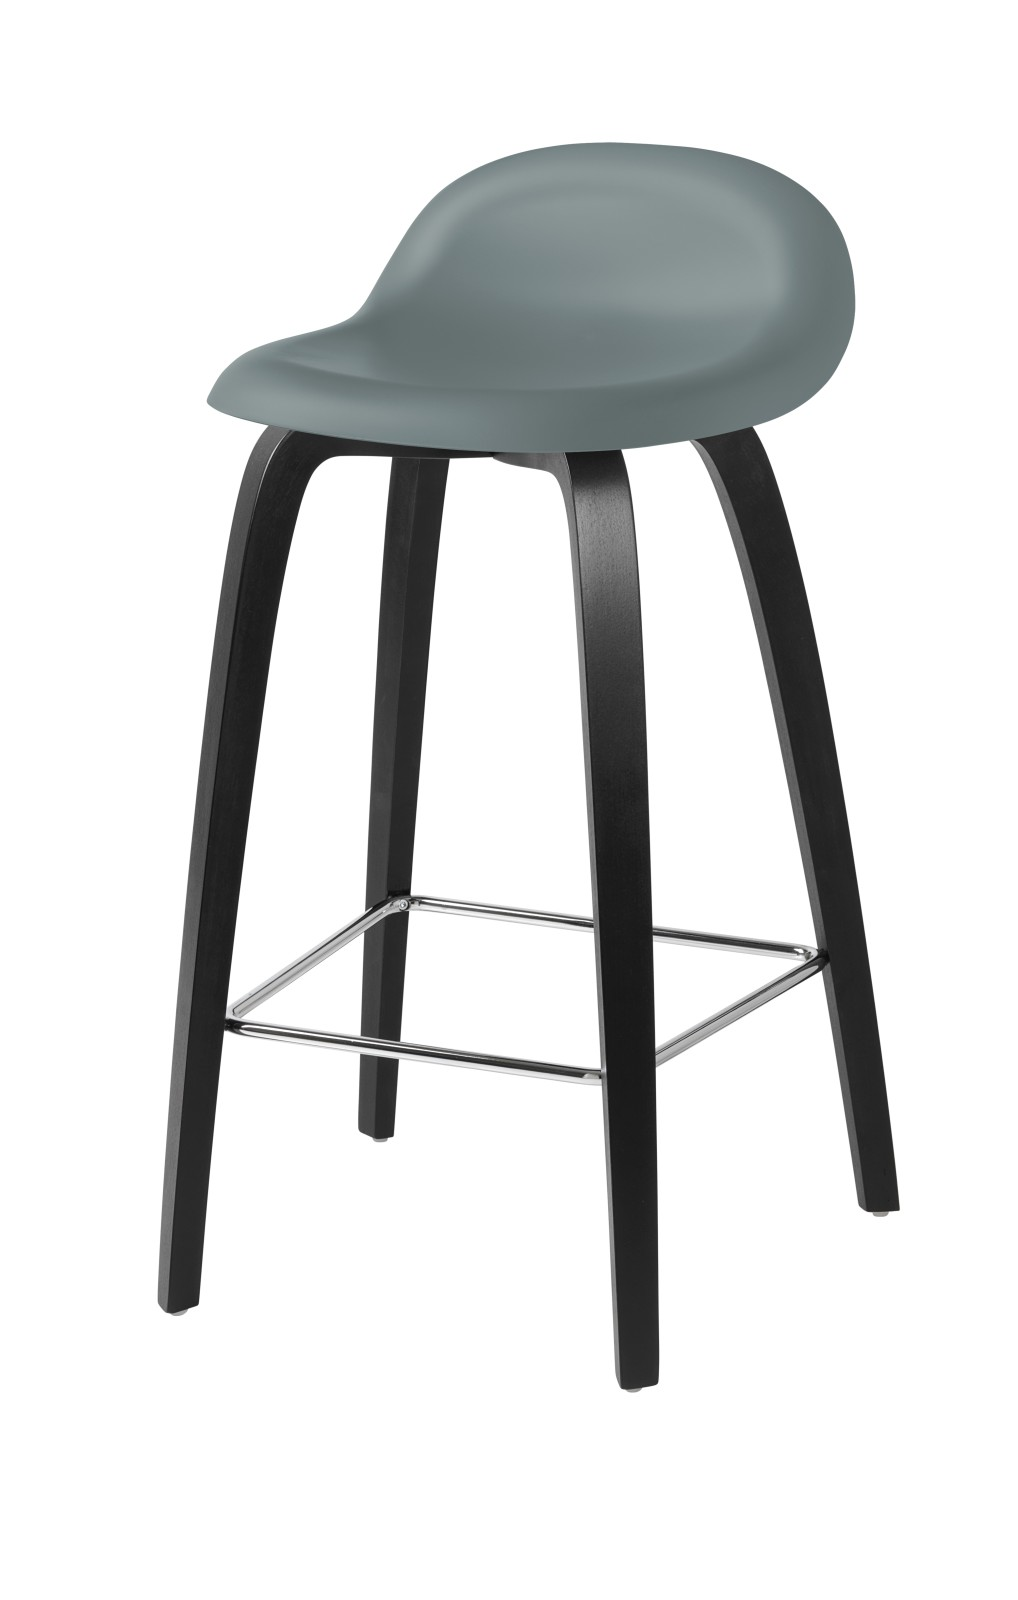 Gubi 3D Wood Base Counter Stool - Unupholstered Gubi HiRek Rainy Grey, Gubi Wood Black Stained Beech